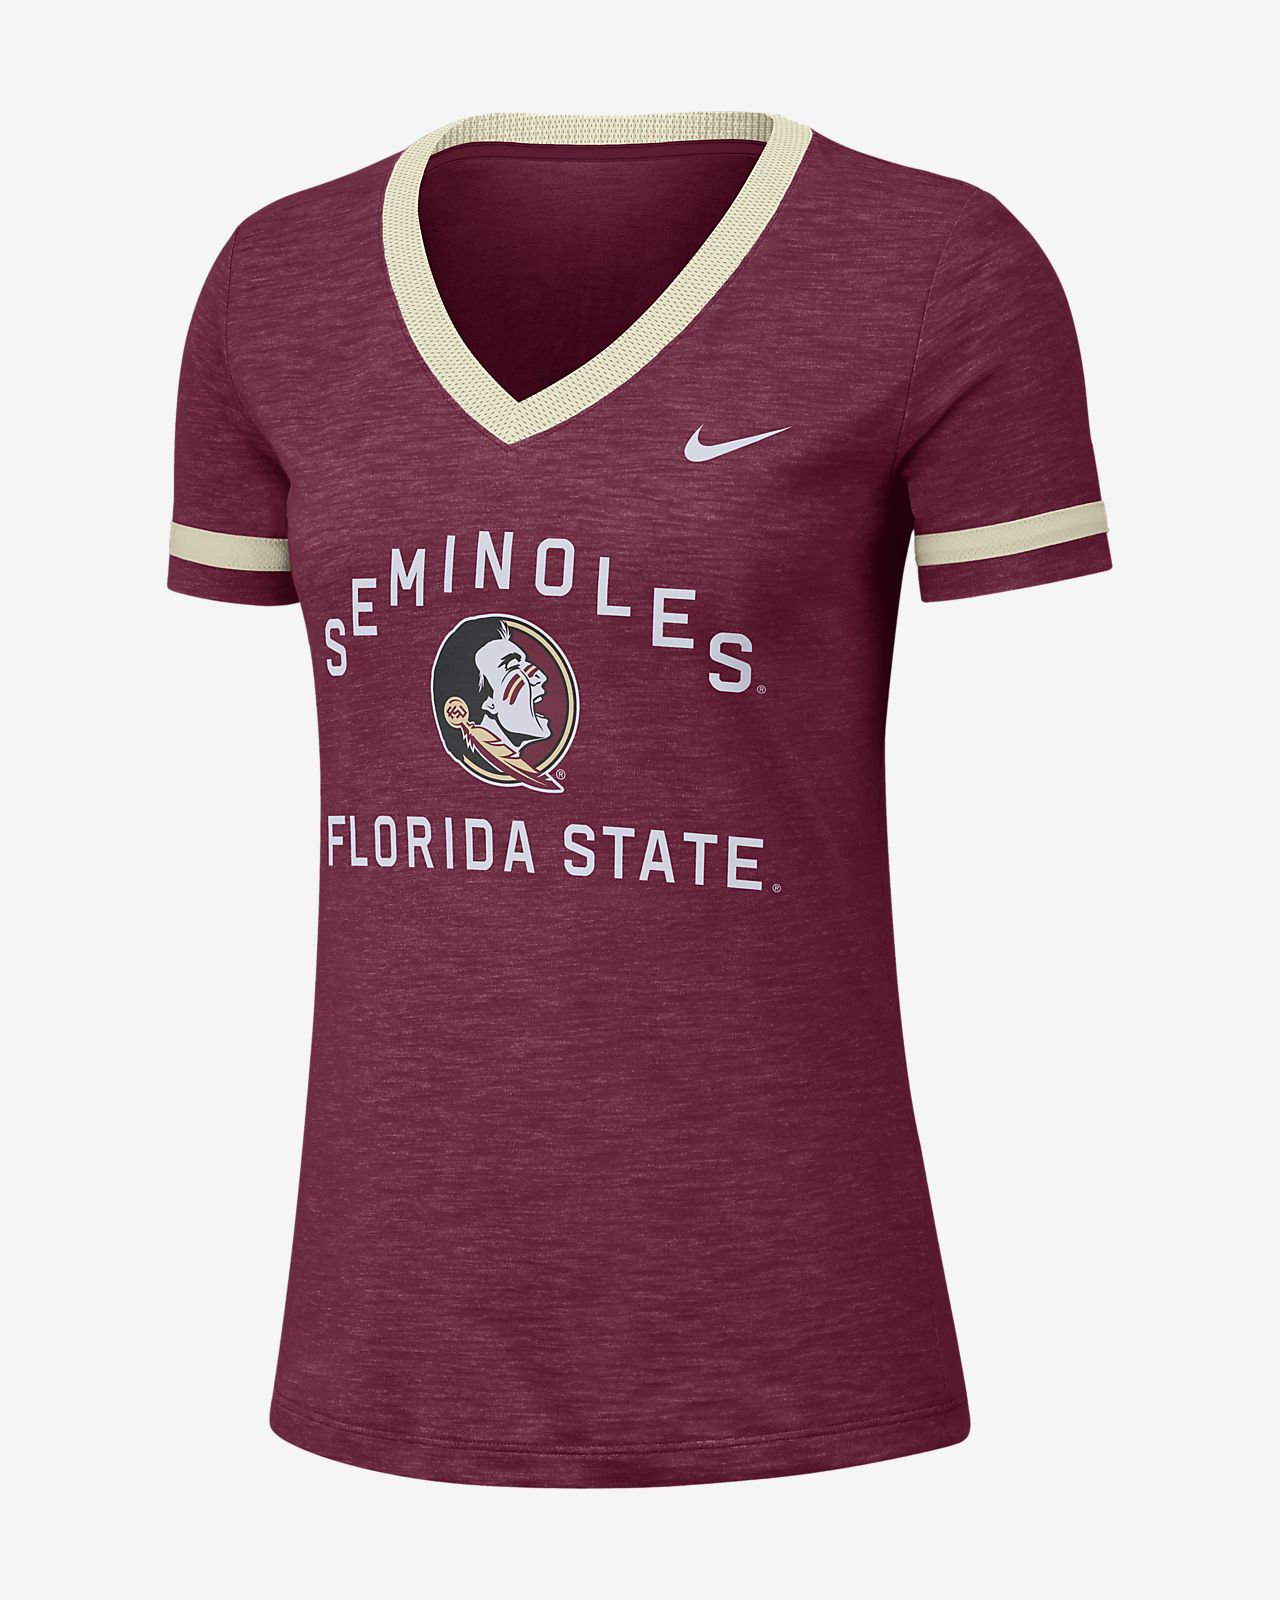 Nike College Dri-FIT Fan (Florida State) Women's Short-Sleeve V-Neck Top